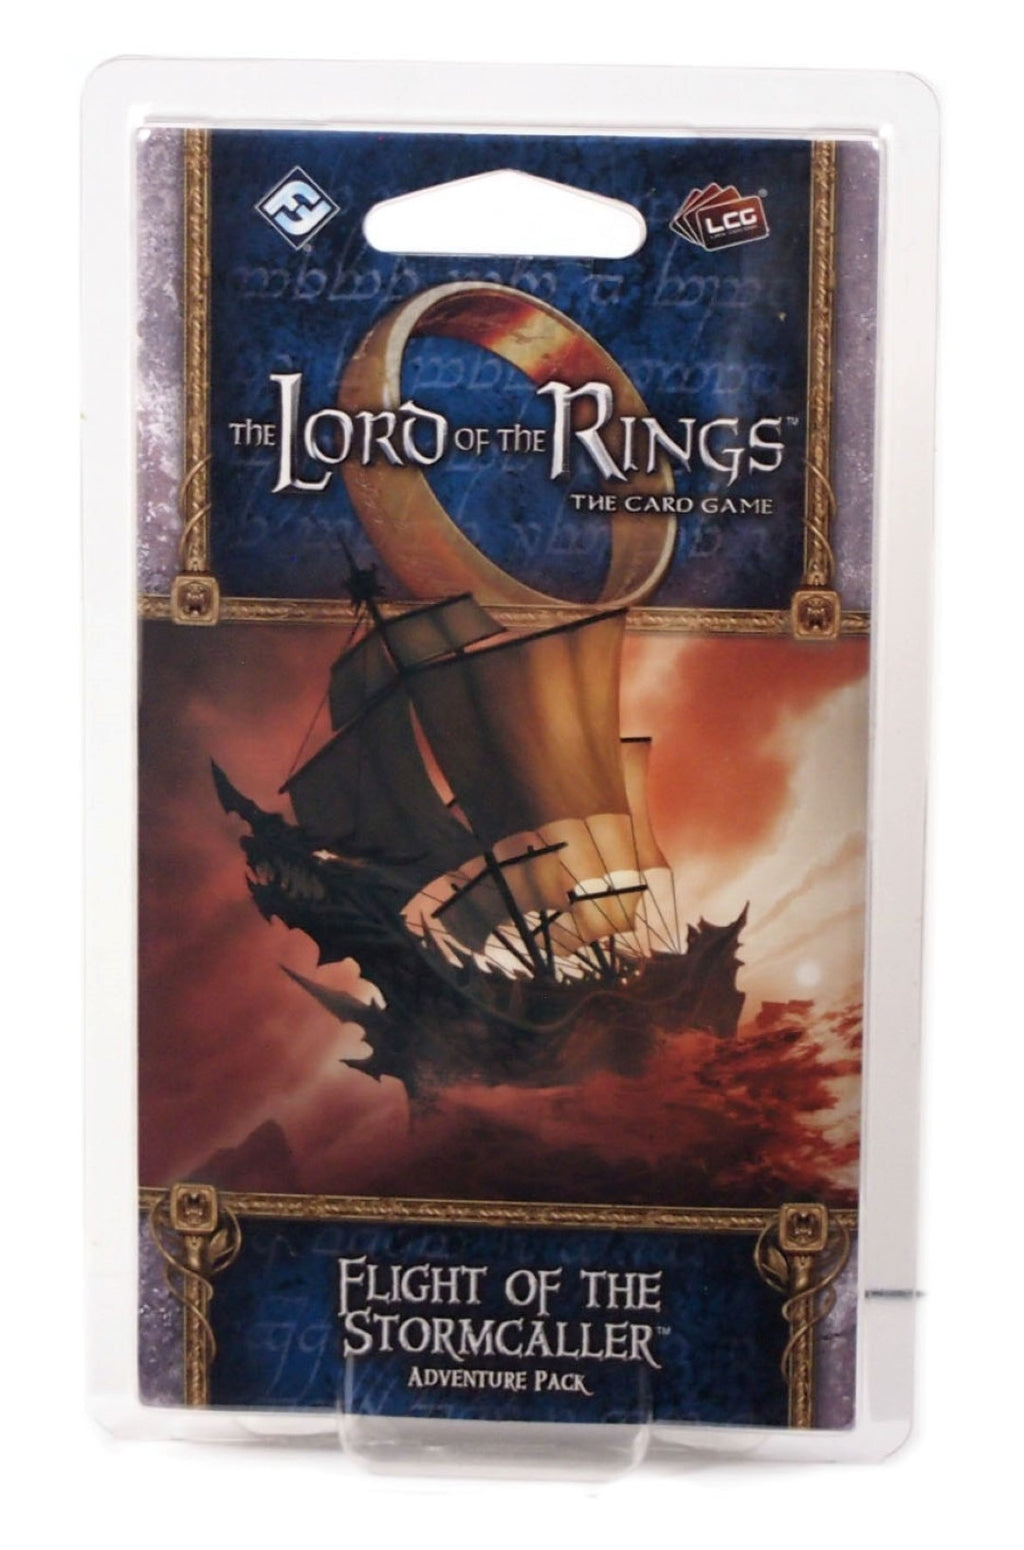 Lord of the Rings LCG, Flight of the Stormcaller Adventure pack